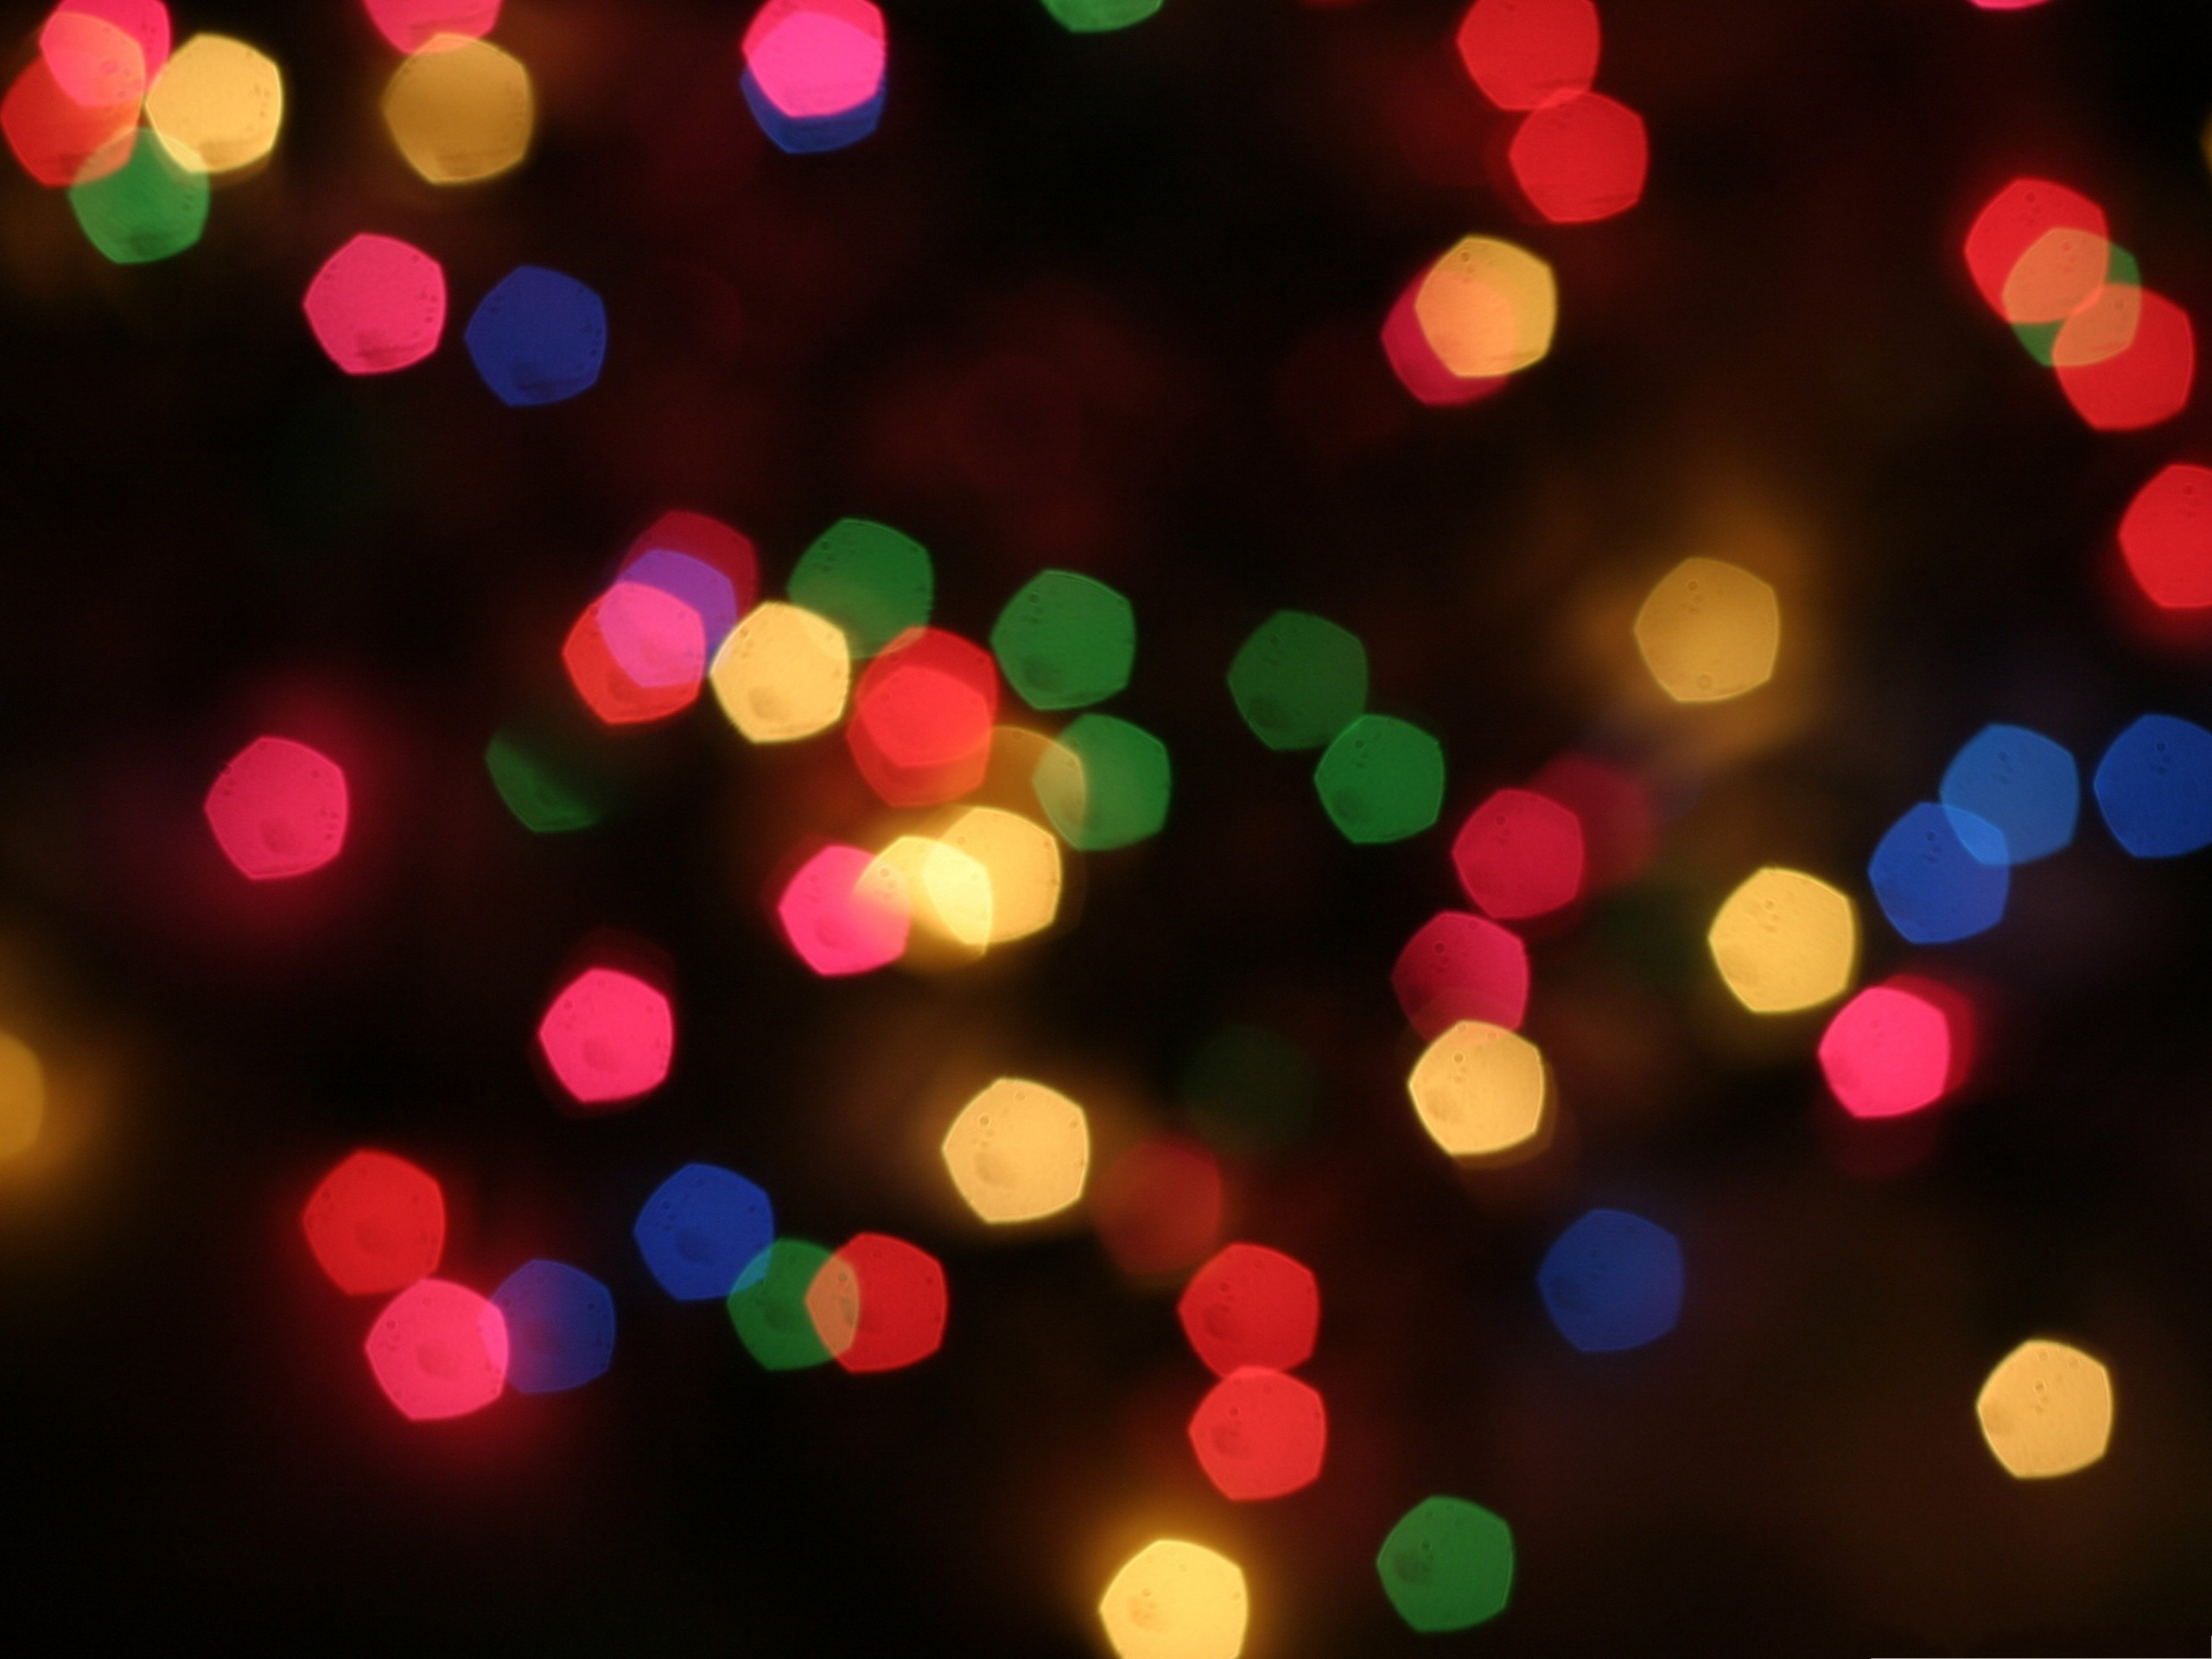 2560x1920 Free Colorful Lights Wallpaper